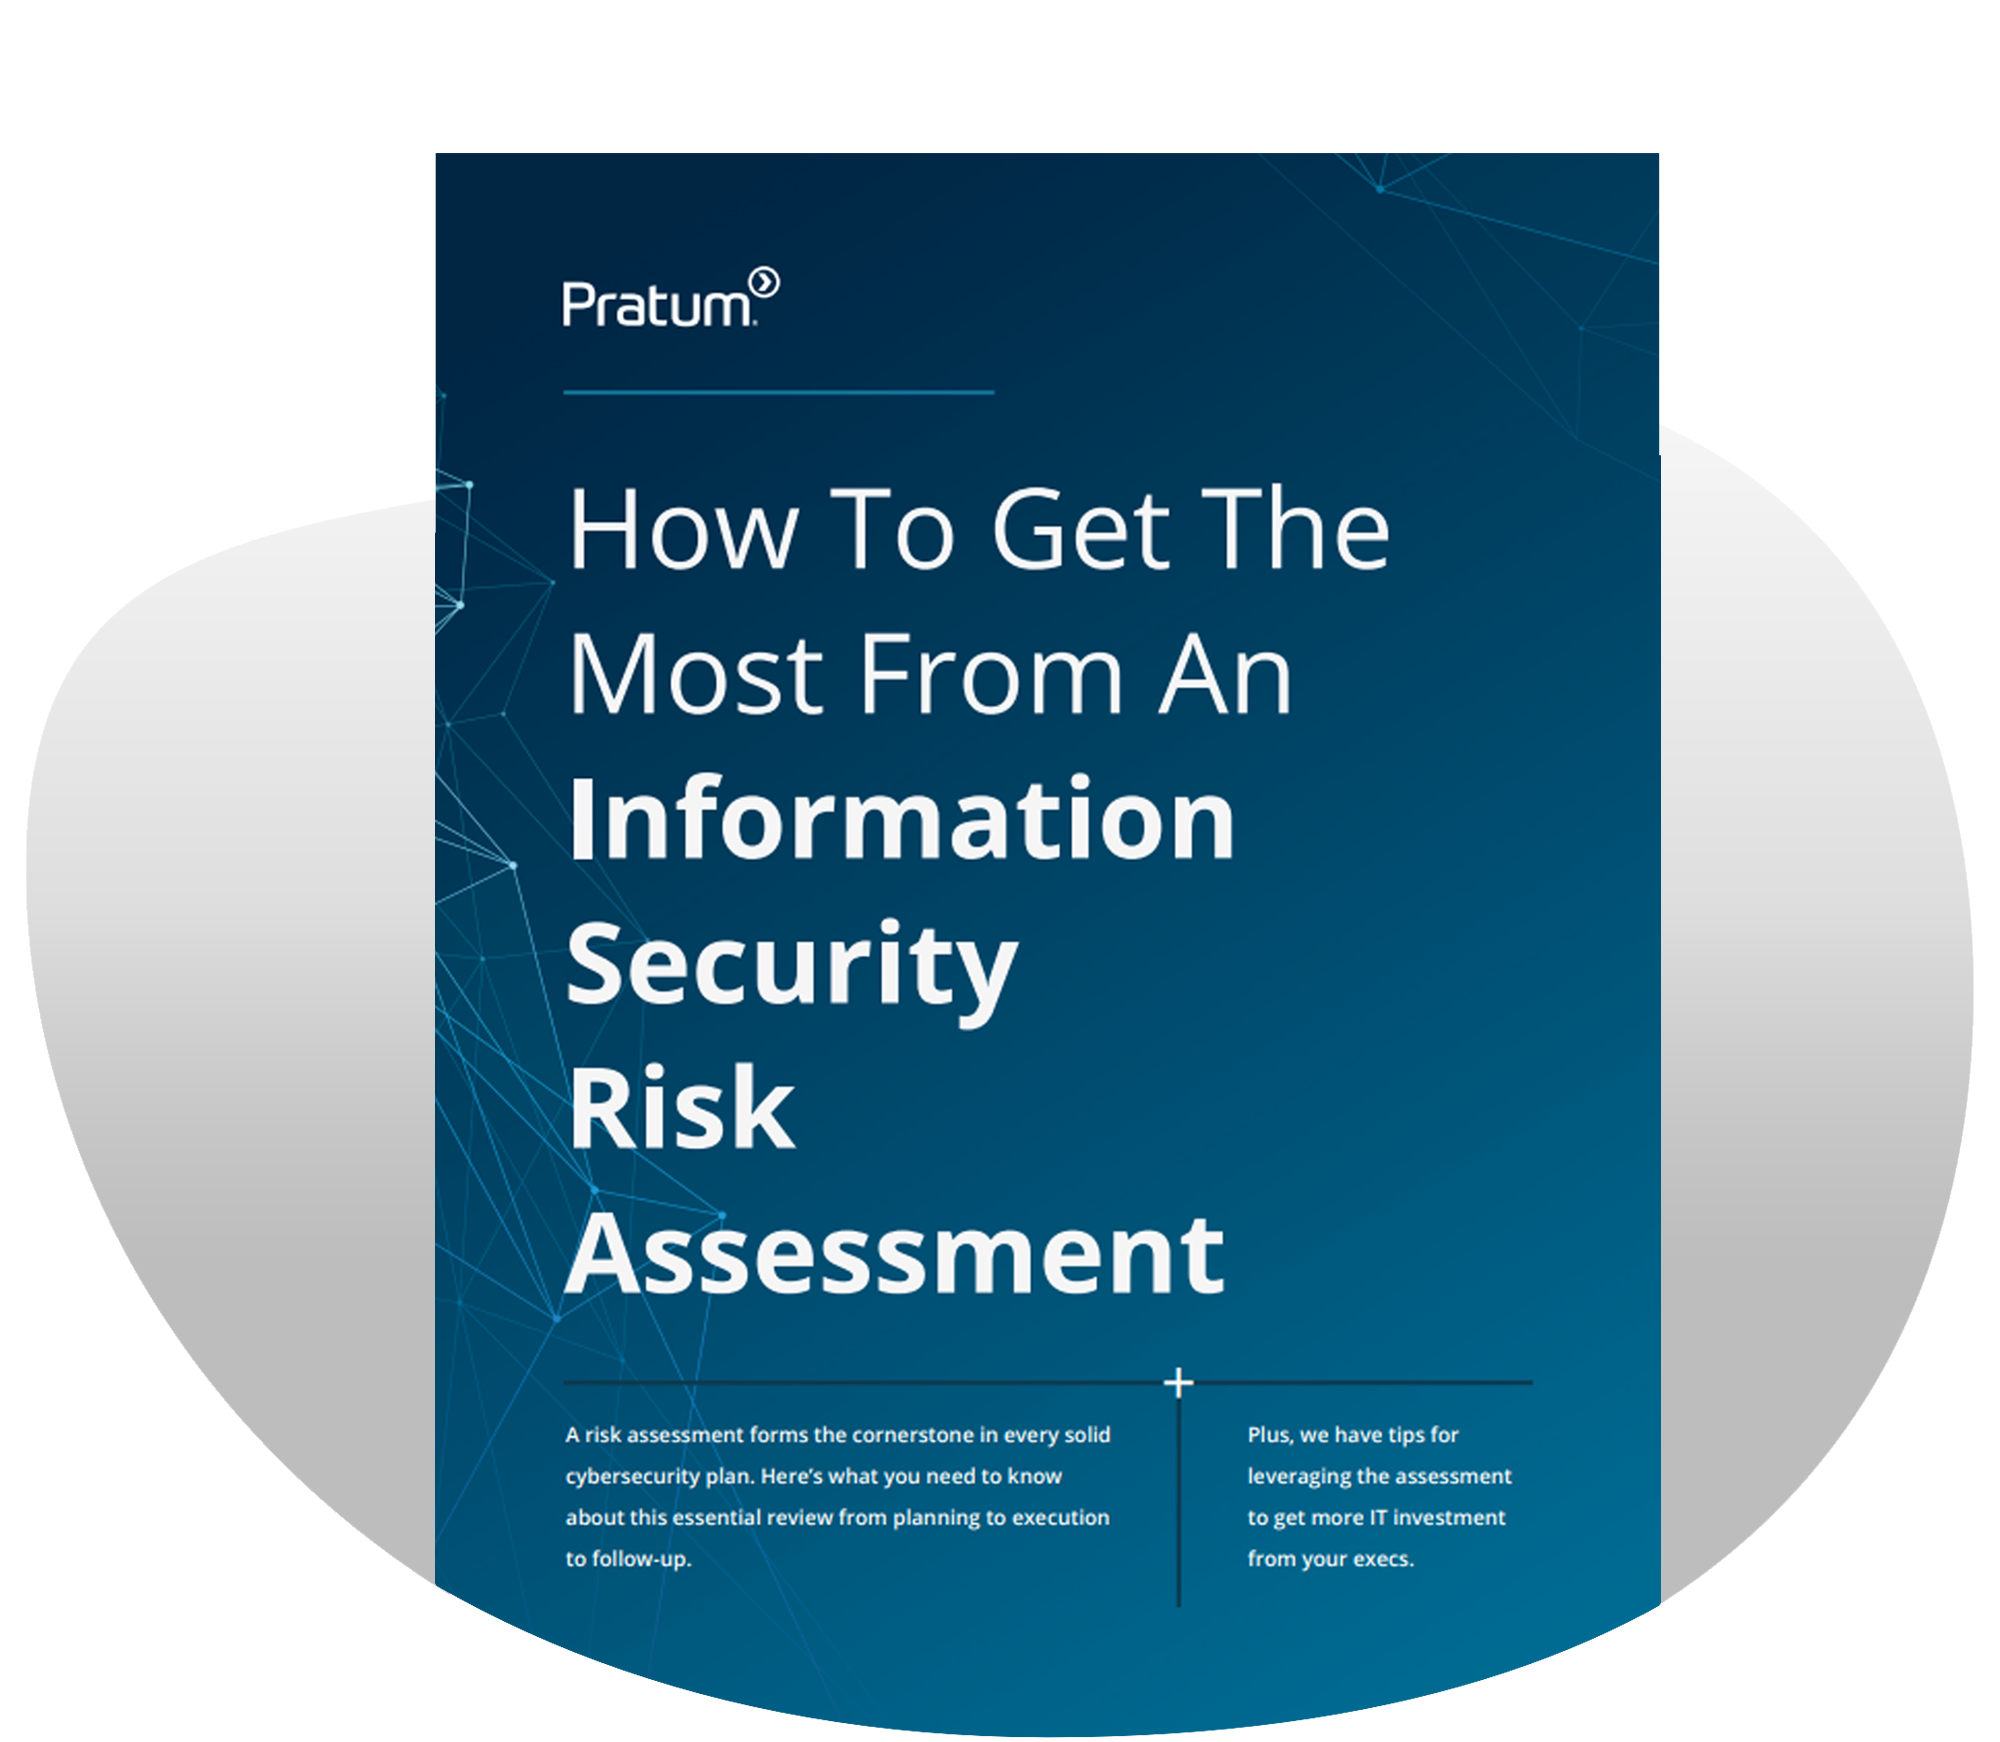 Information Security Risk Assessment Email Image_Pratum_20200204_IXX-1